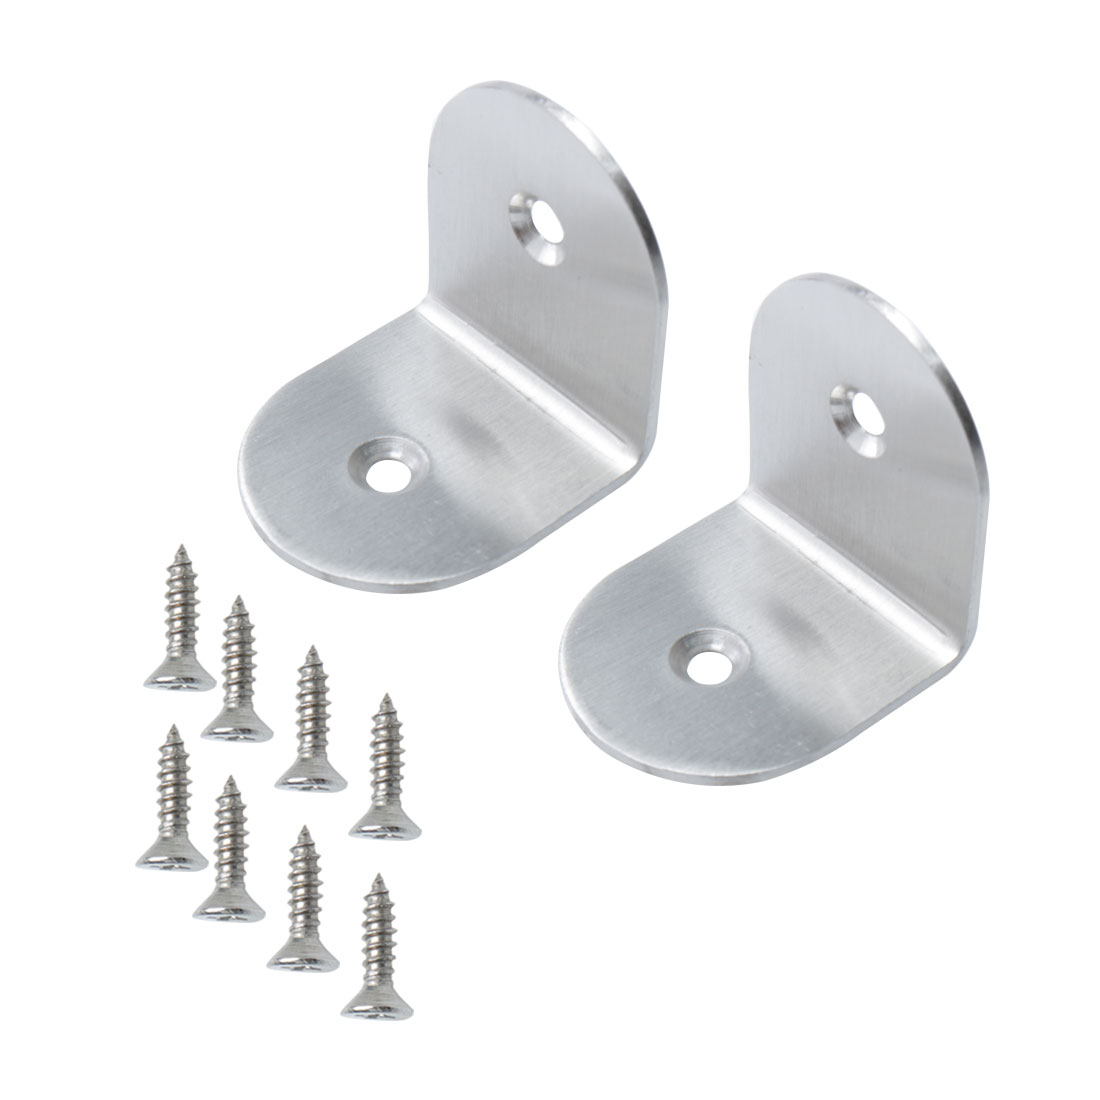 Right Angle Bracket Stainless Steel Brace Fastener Support w Screw 40x40mm, 2pcs